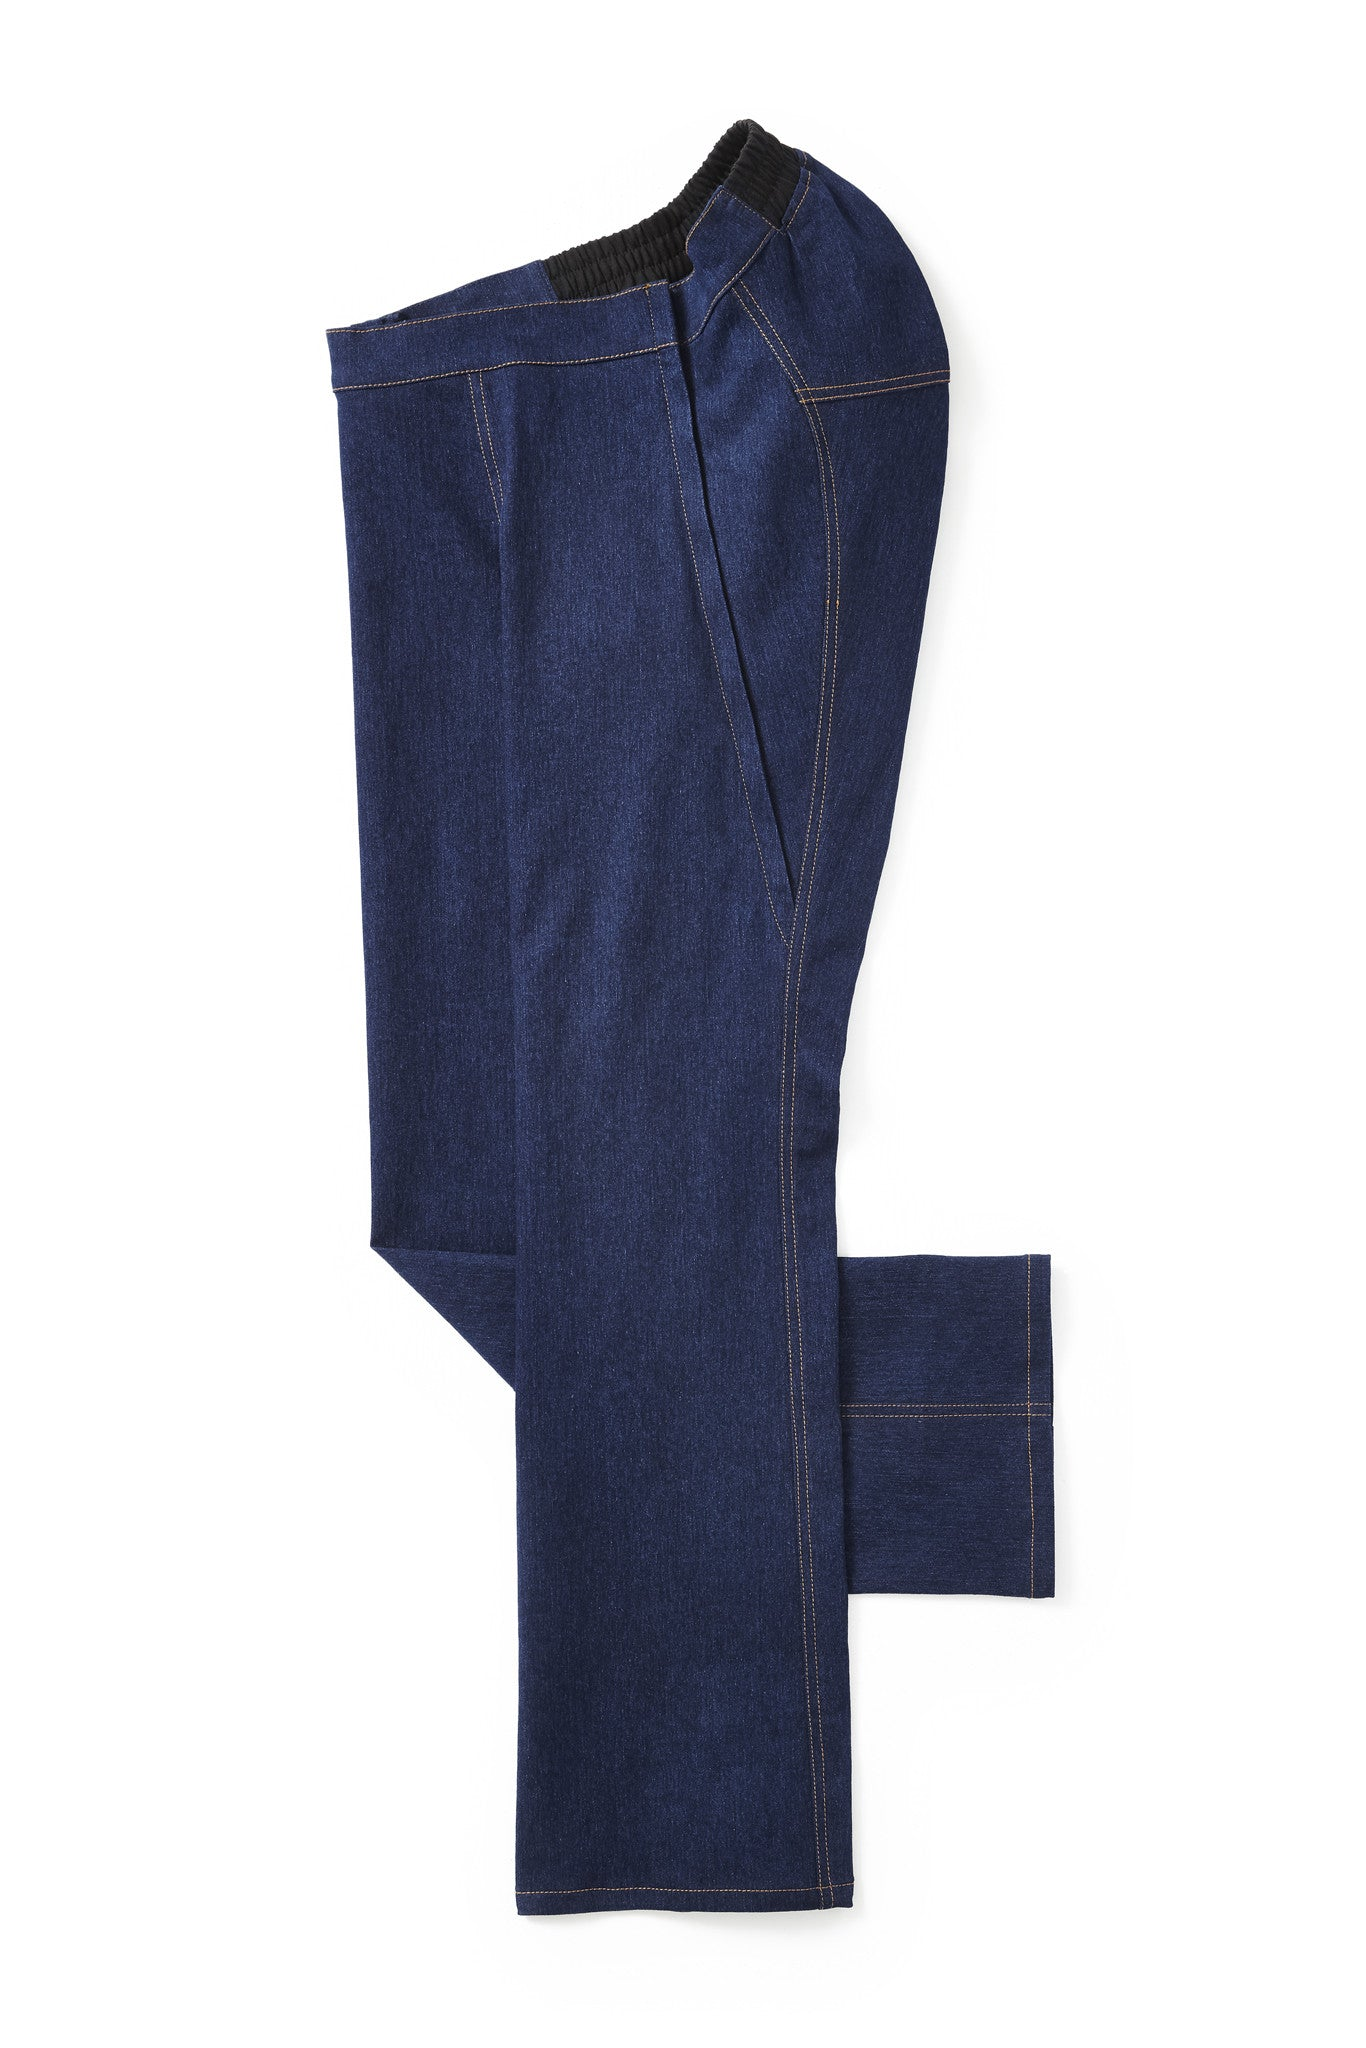 Straight Leg Sailor Jean - Beautifully designed clothing, easy to access.